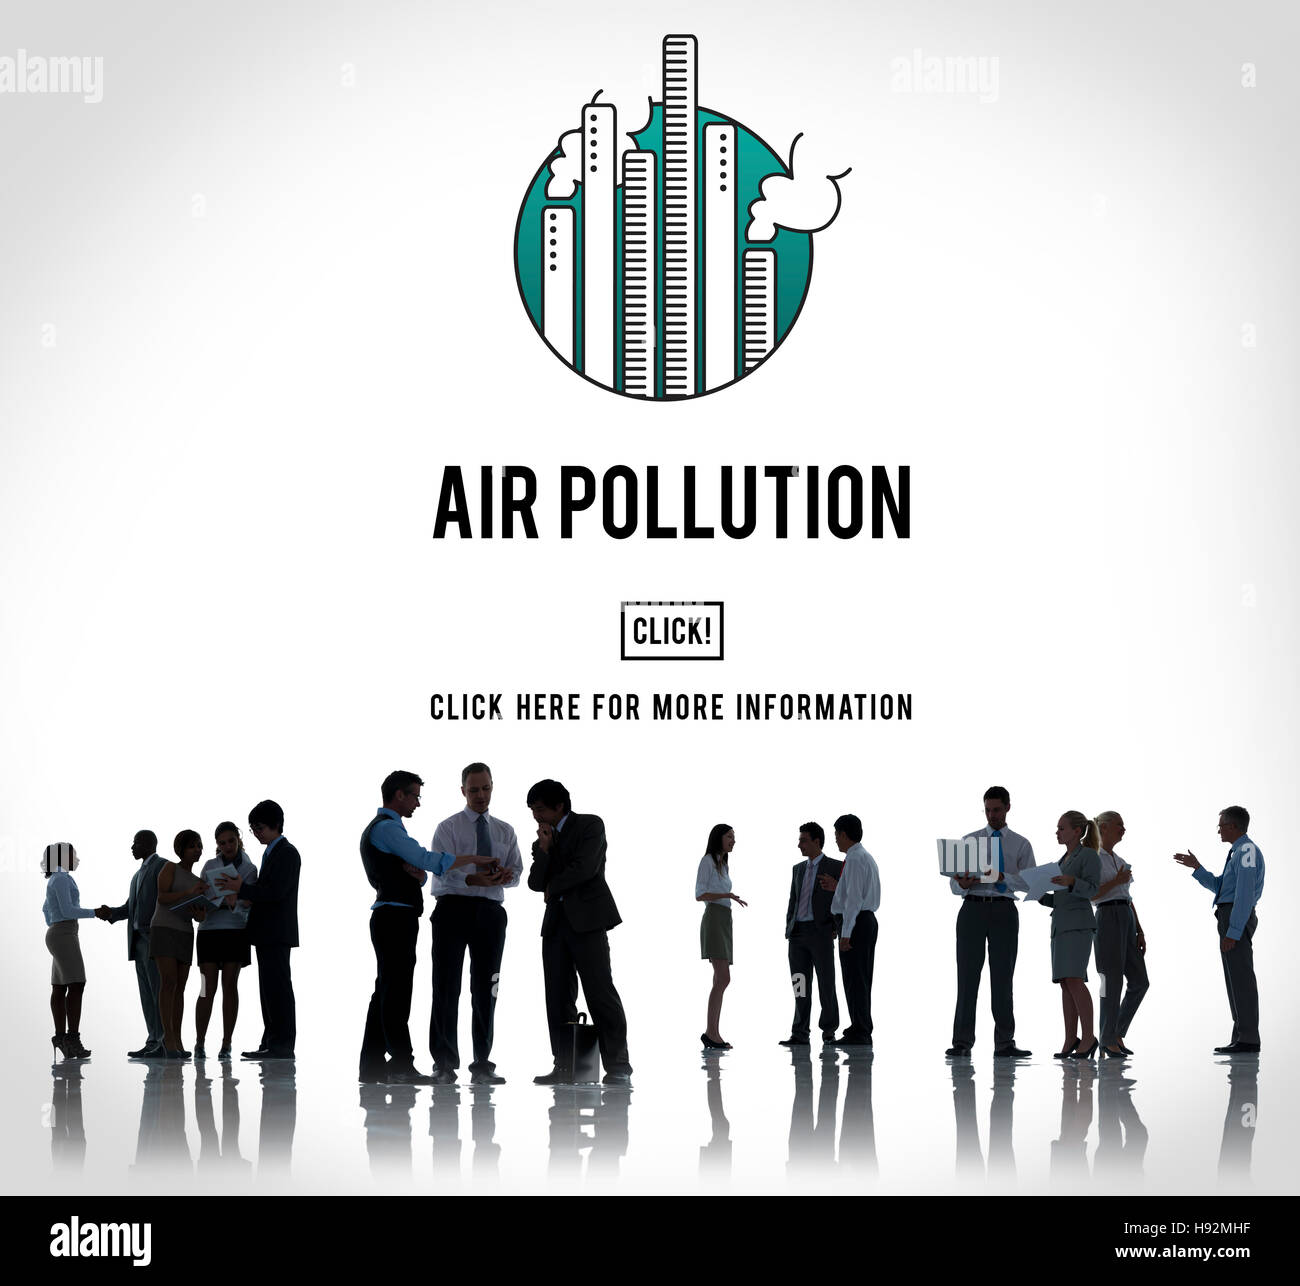 Air Pollution Carbon Dioxide Dirty Energy Toxic Concept - Stock Image